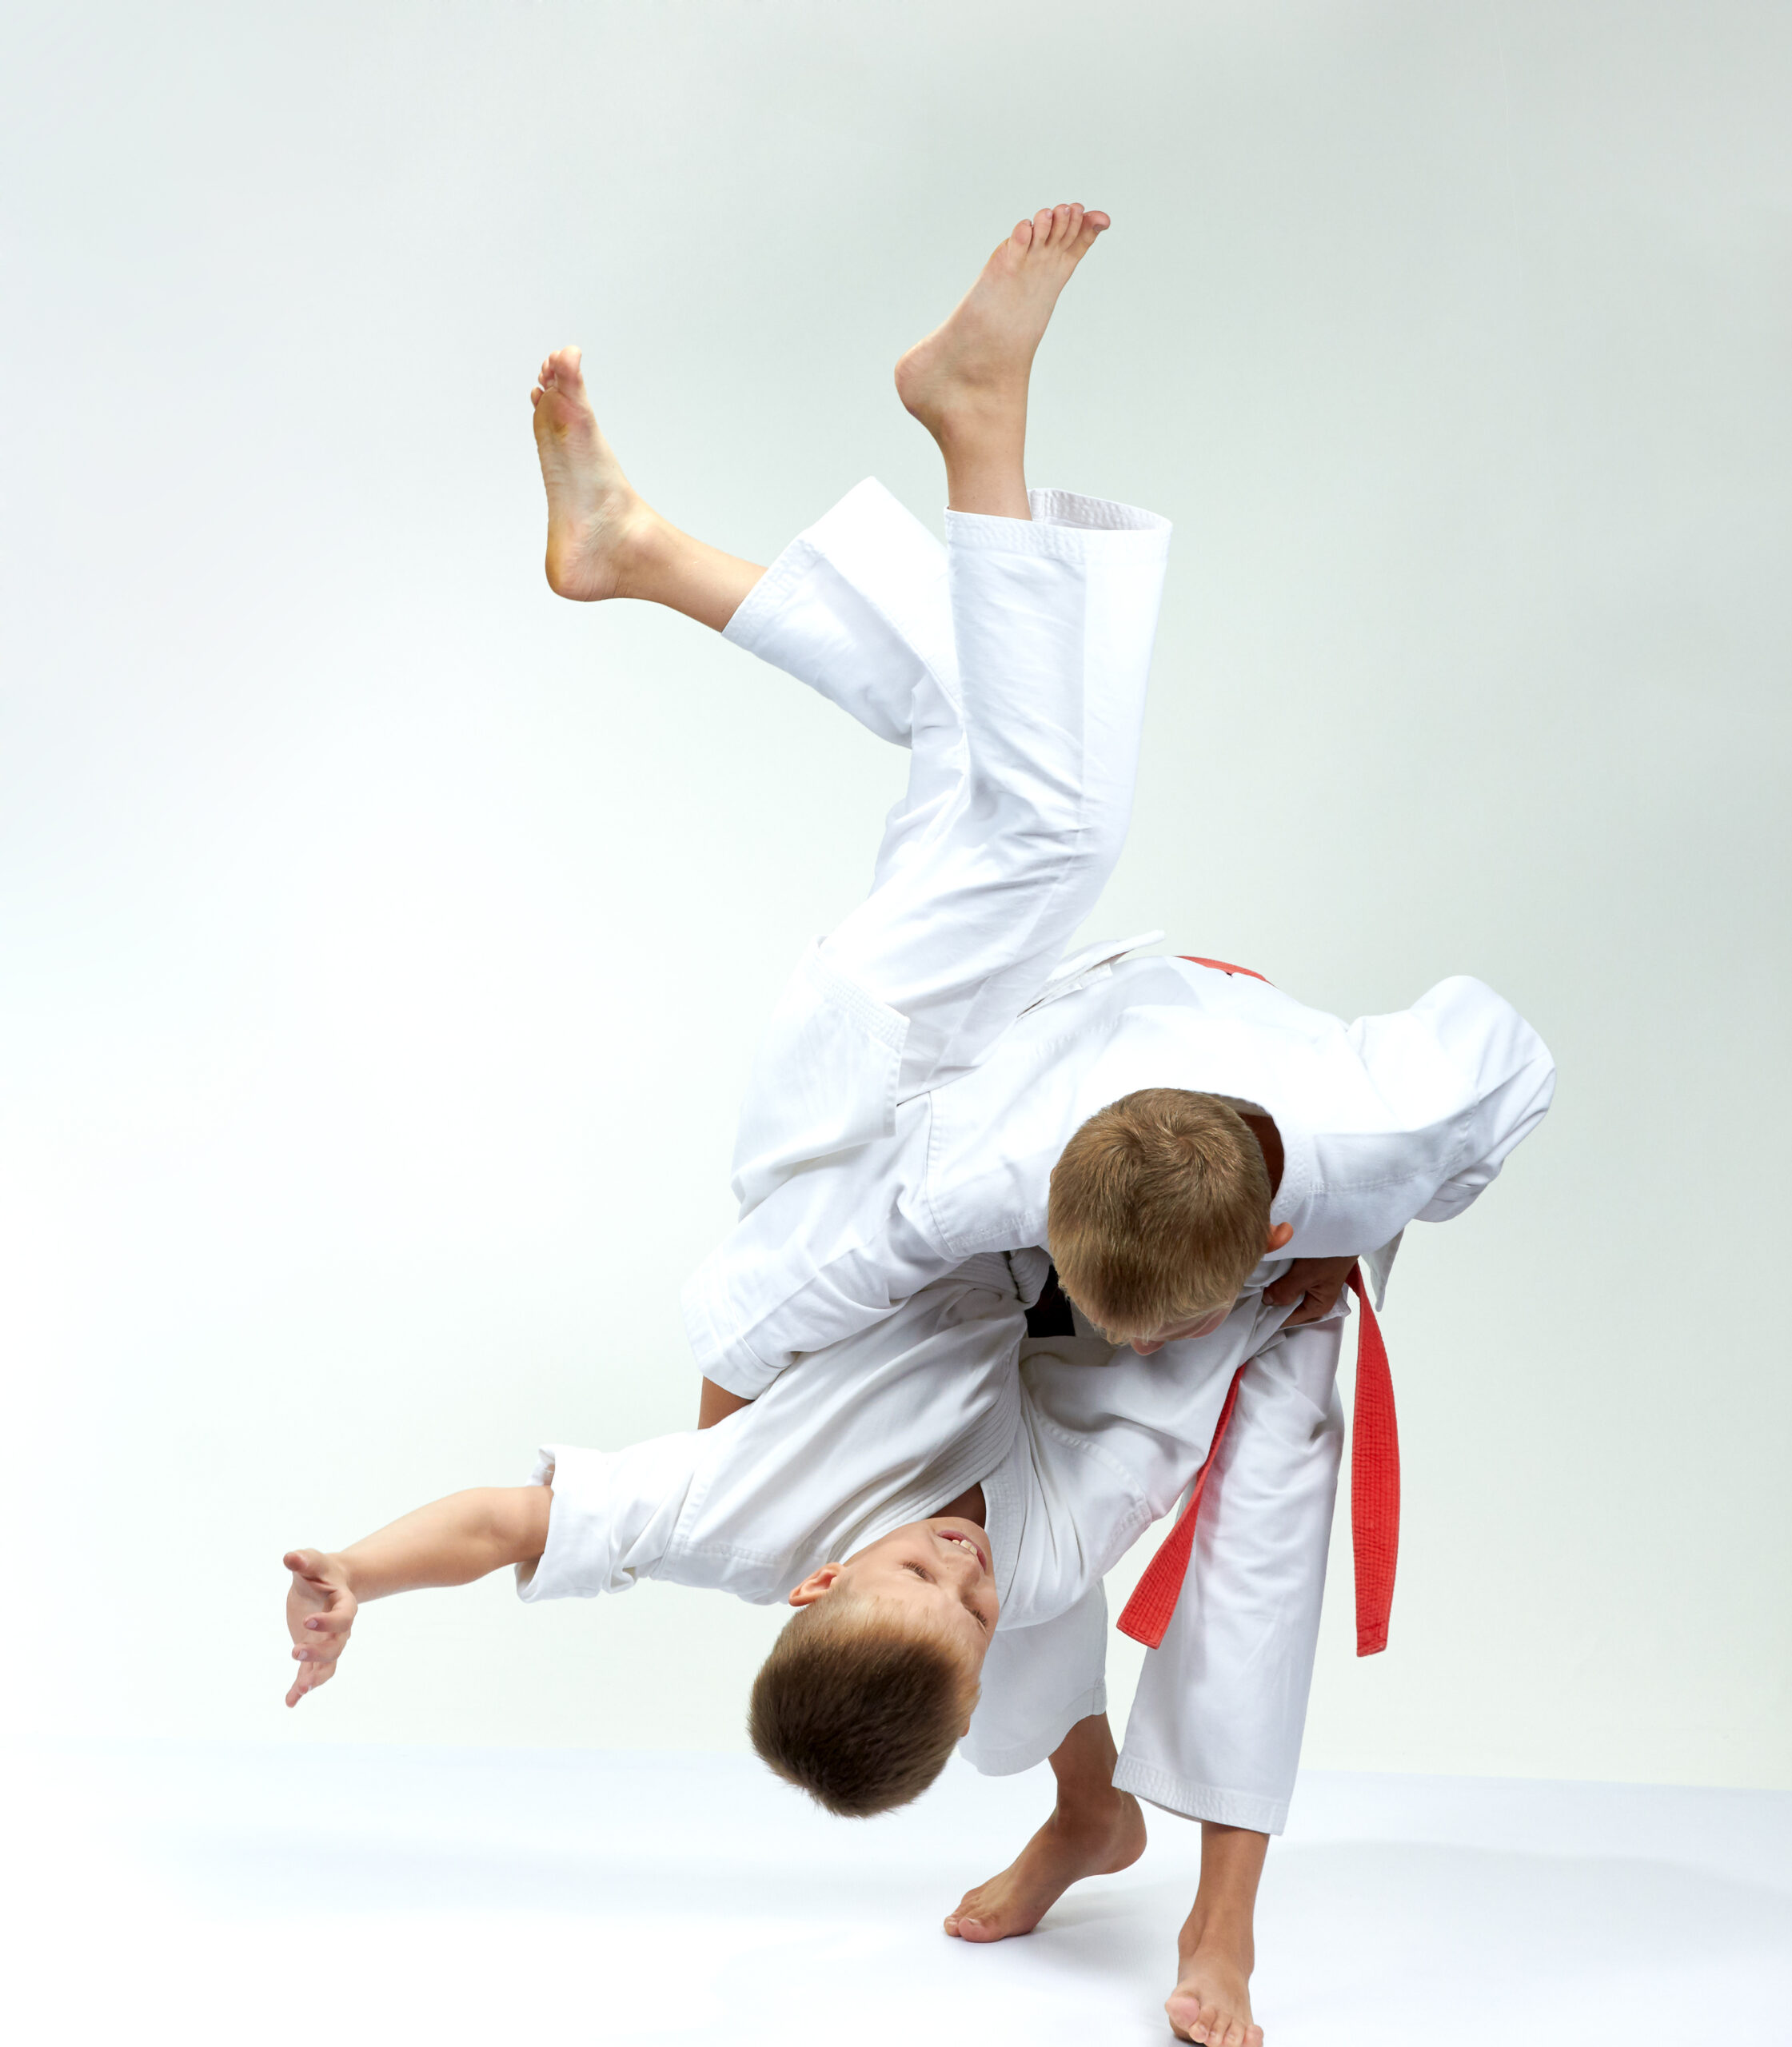 Photograph licensed by Destination Judo